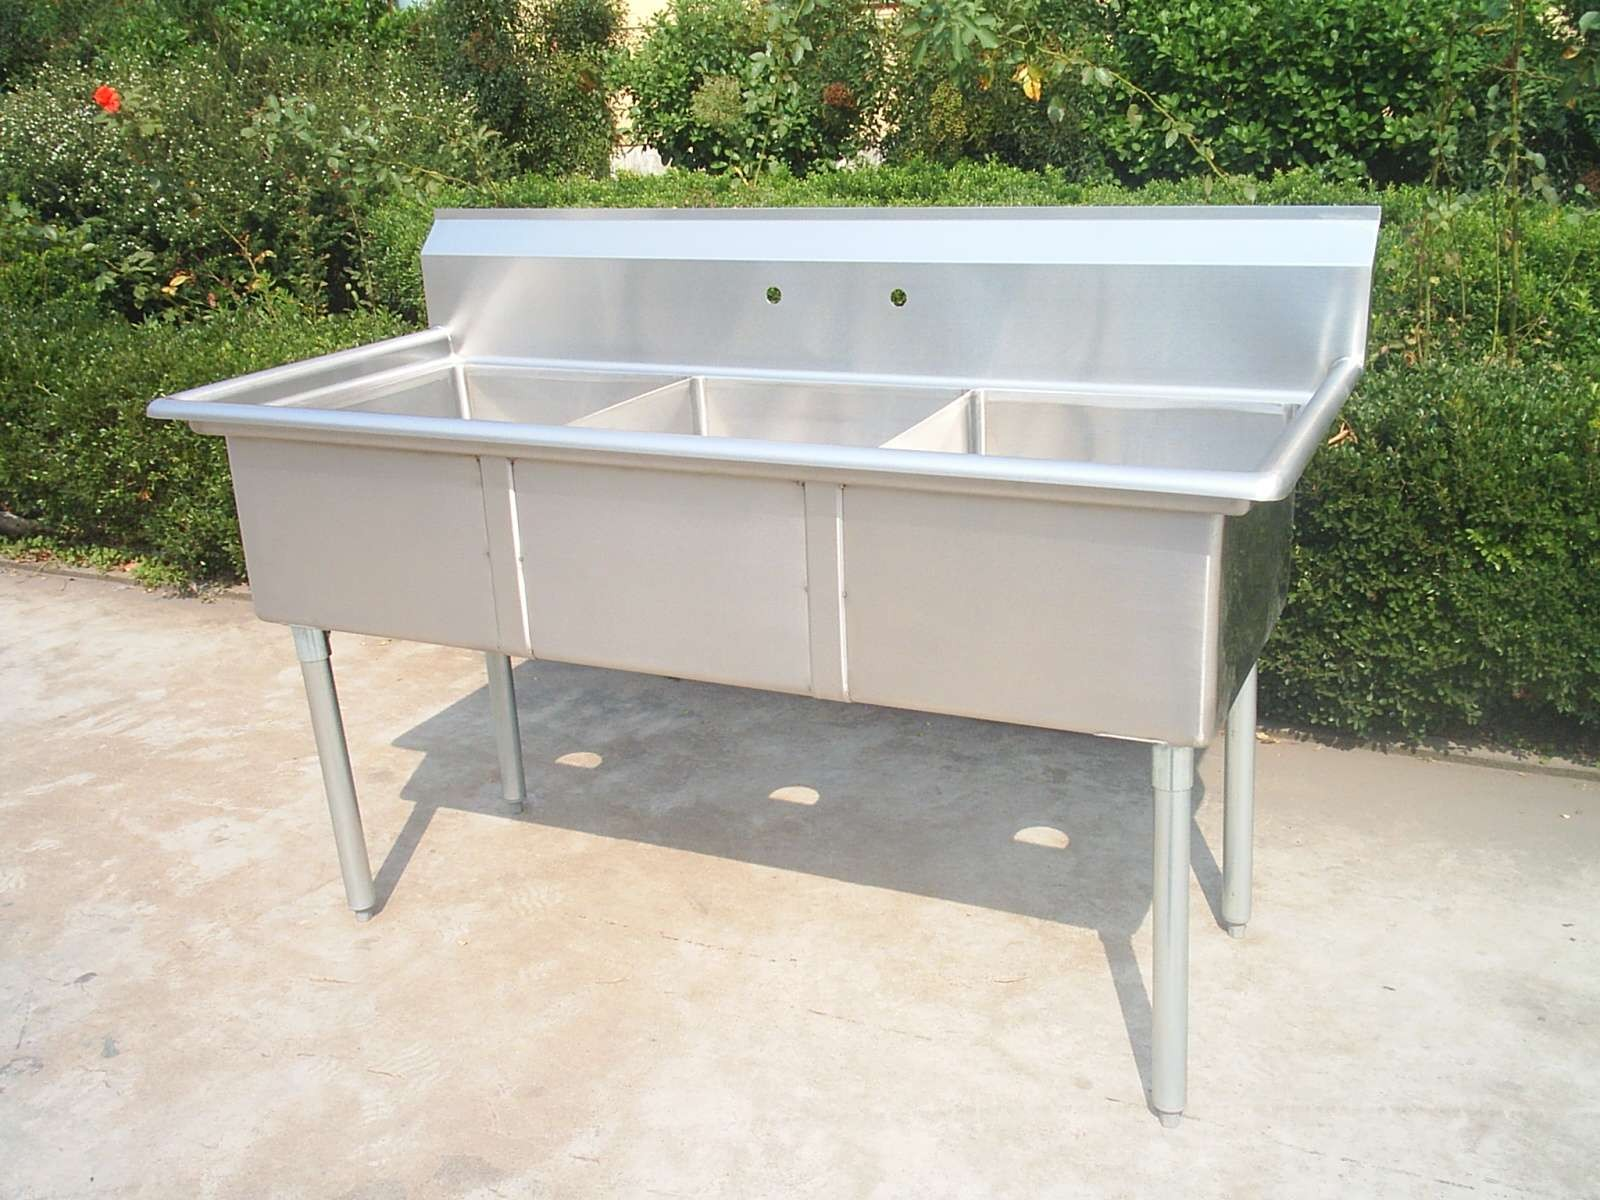 Stainless Steel Sink With Baffle Between 3 Compartments , no drainboards, meet with NSF standard